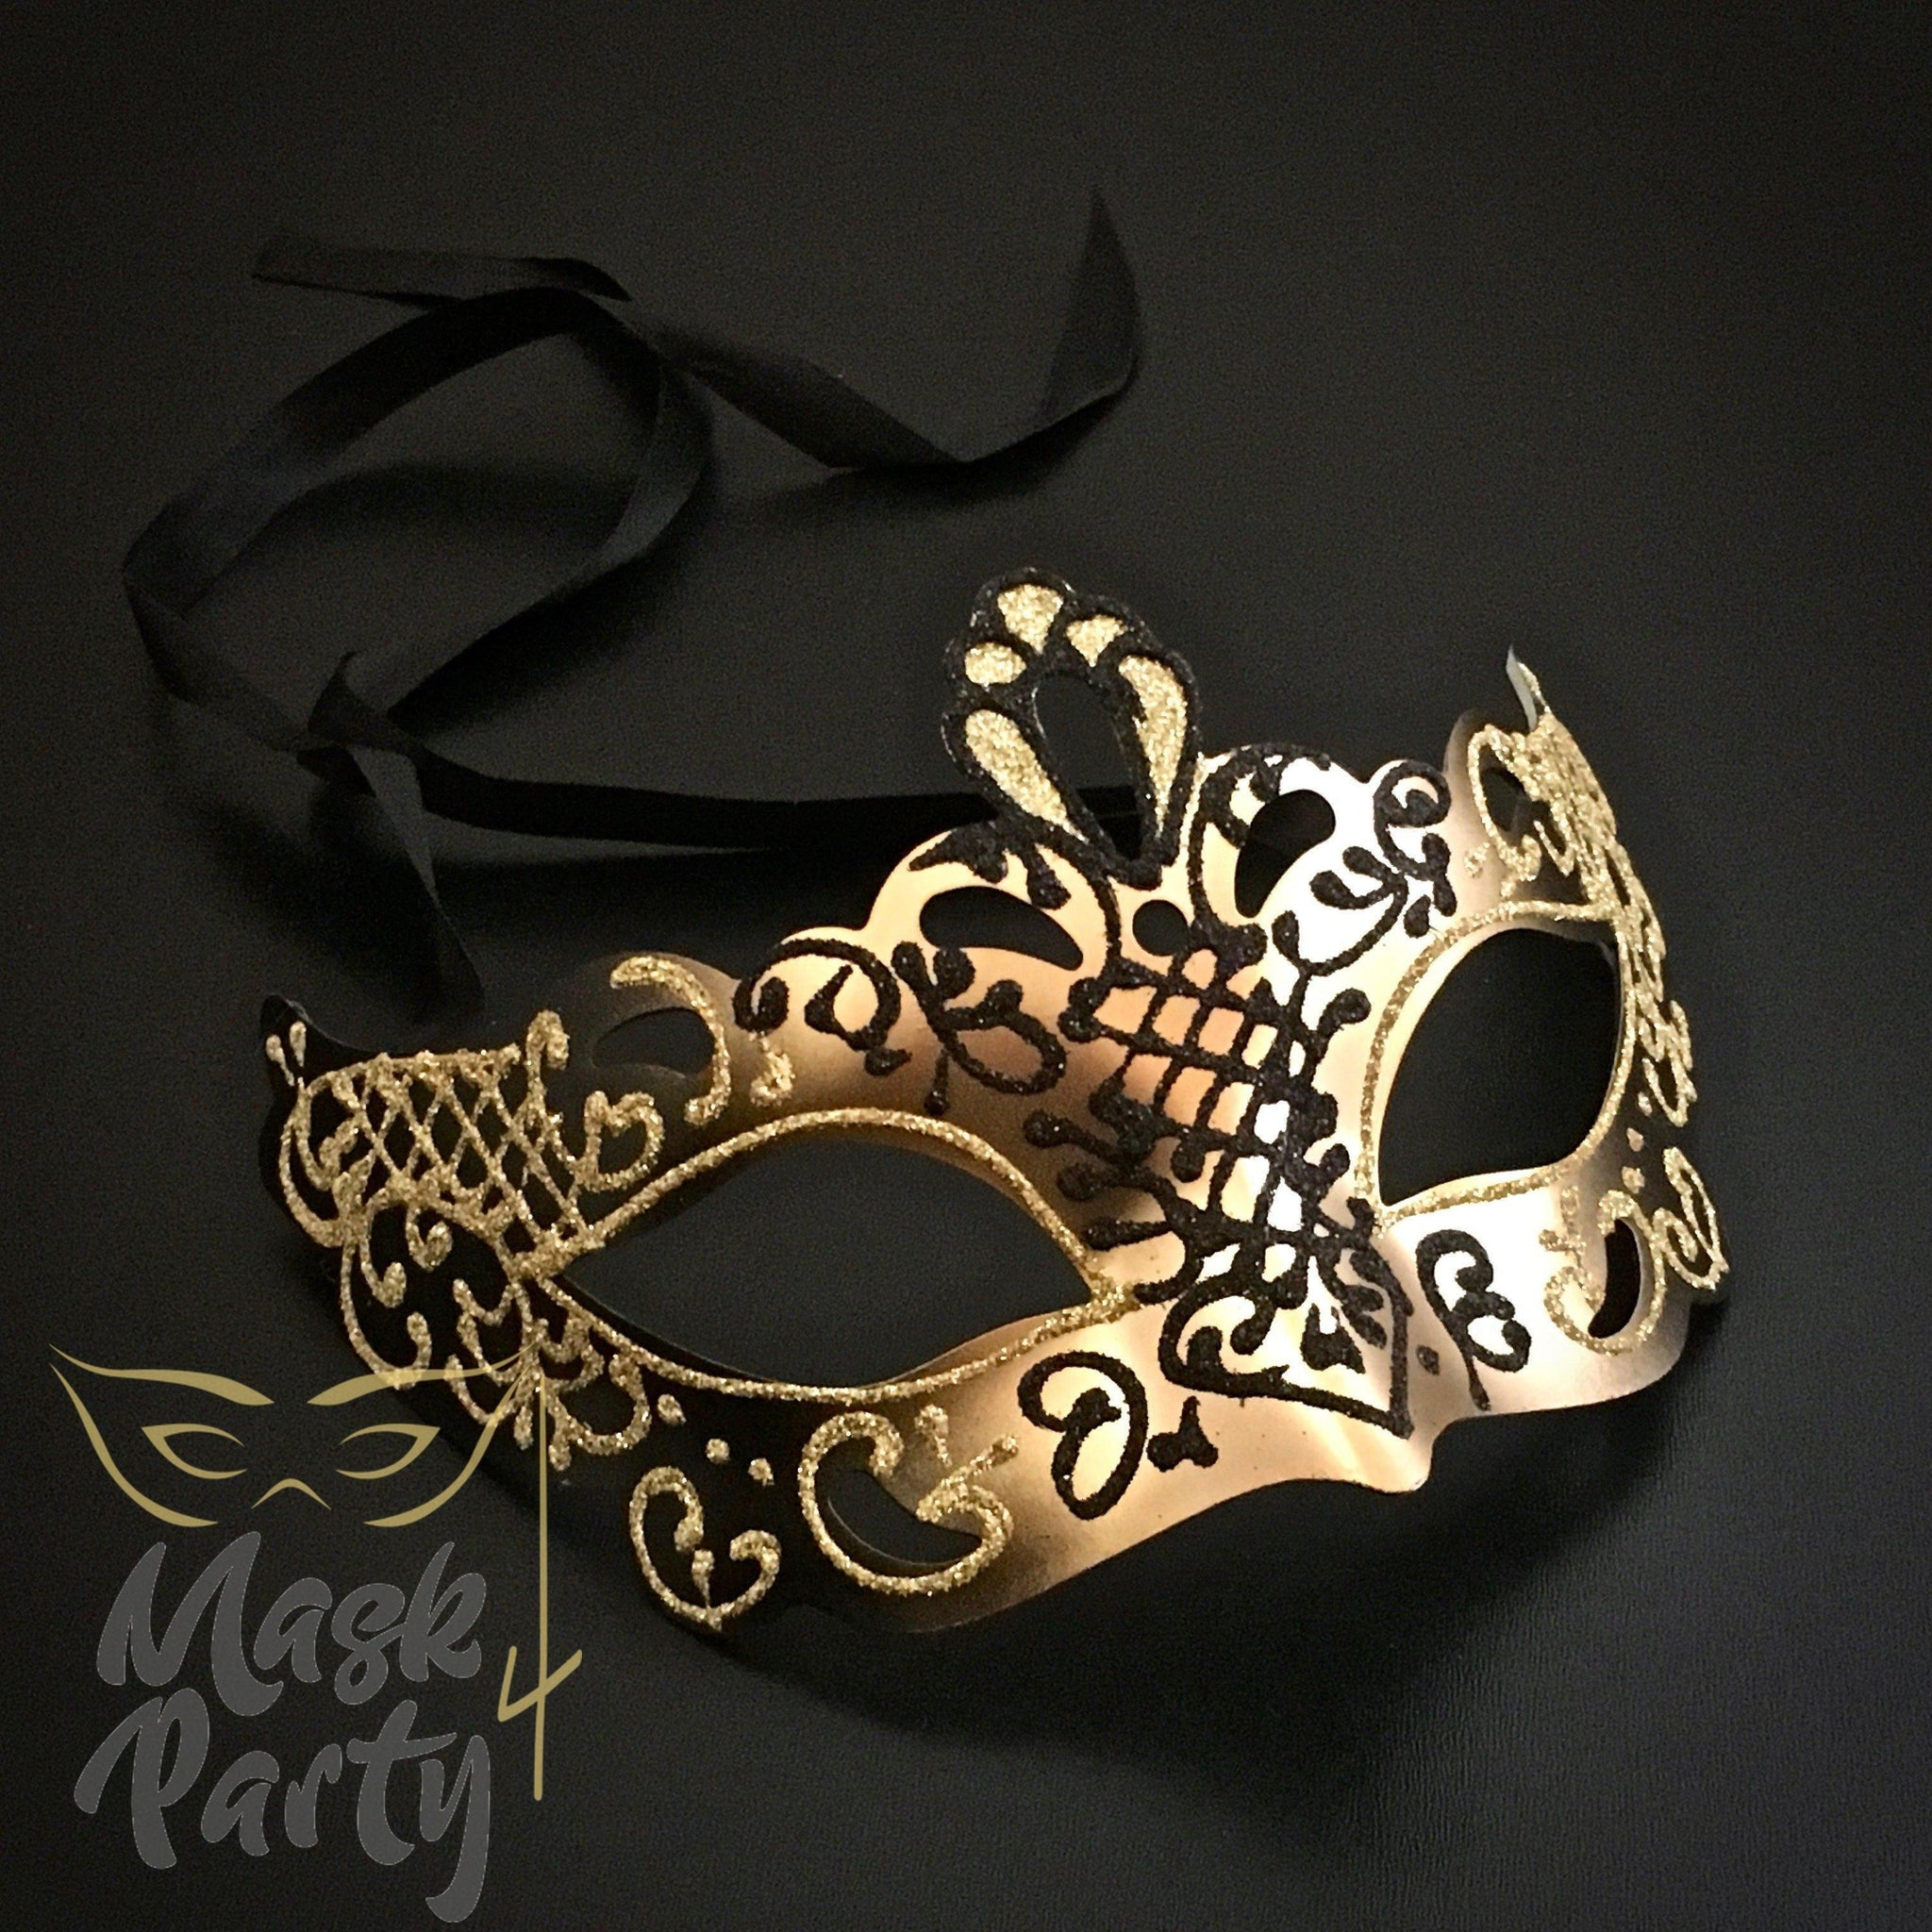 Masquerade Mask - Venetian Eye - Black/Gold - Mask4Party